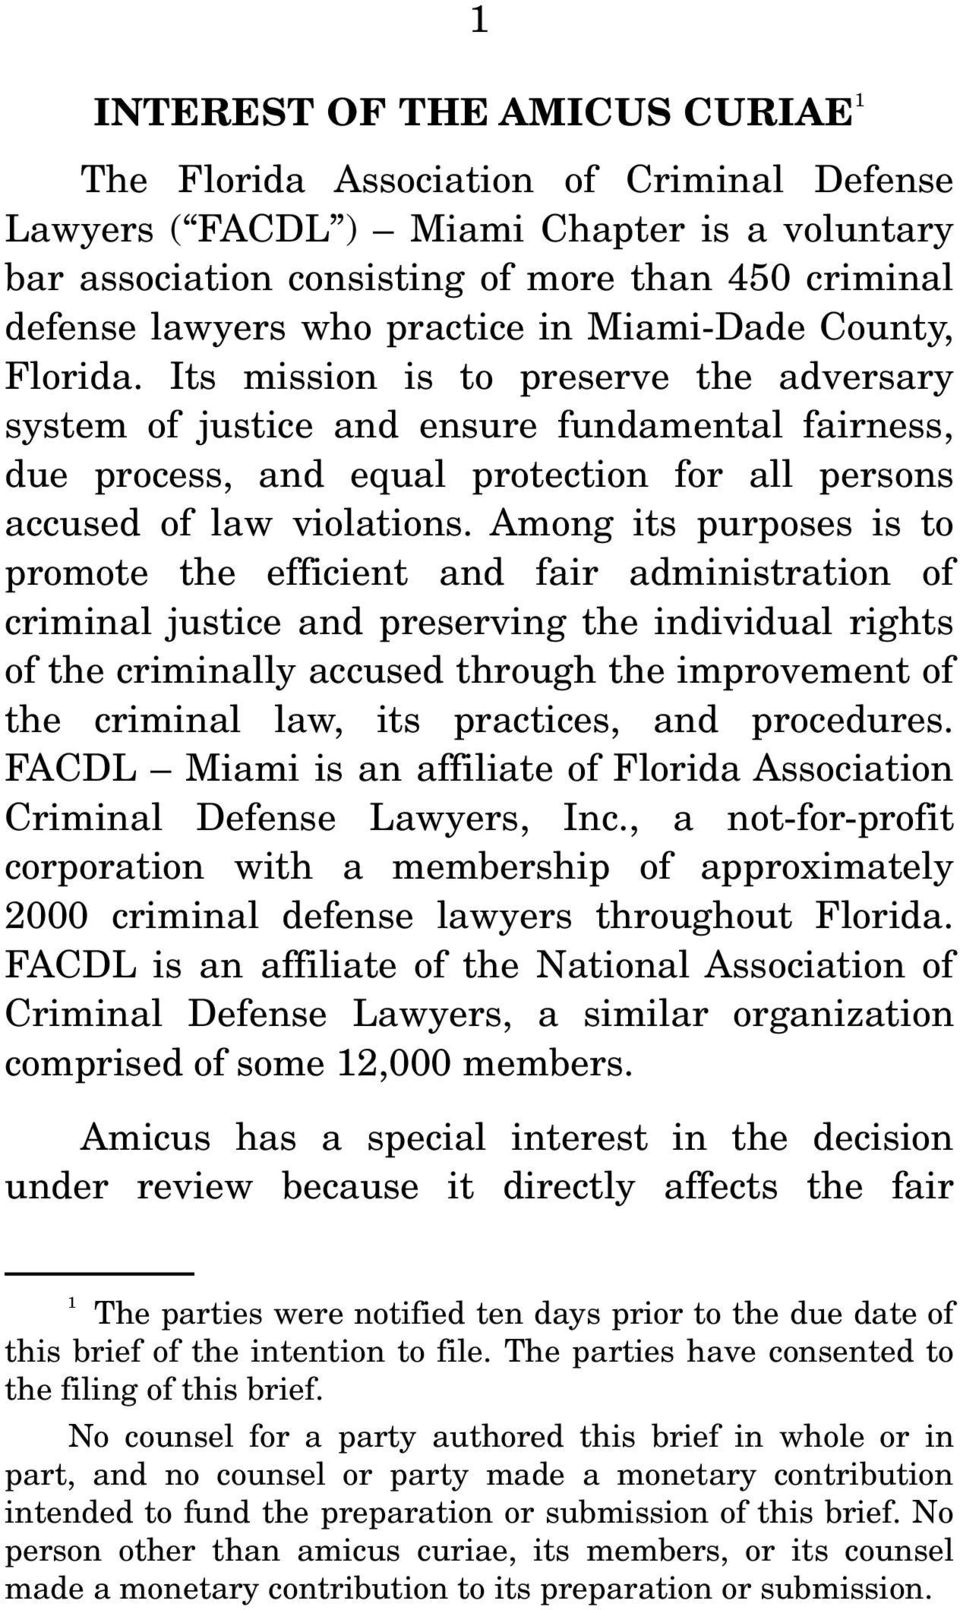 Its mission is to preserve the adversary system of justice and ensure fundamental fairness, due process, and equal protection for all persons accused of law violations.